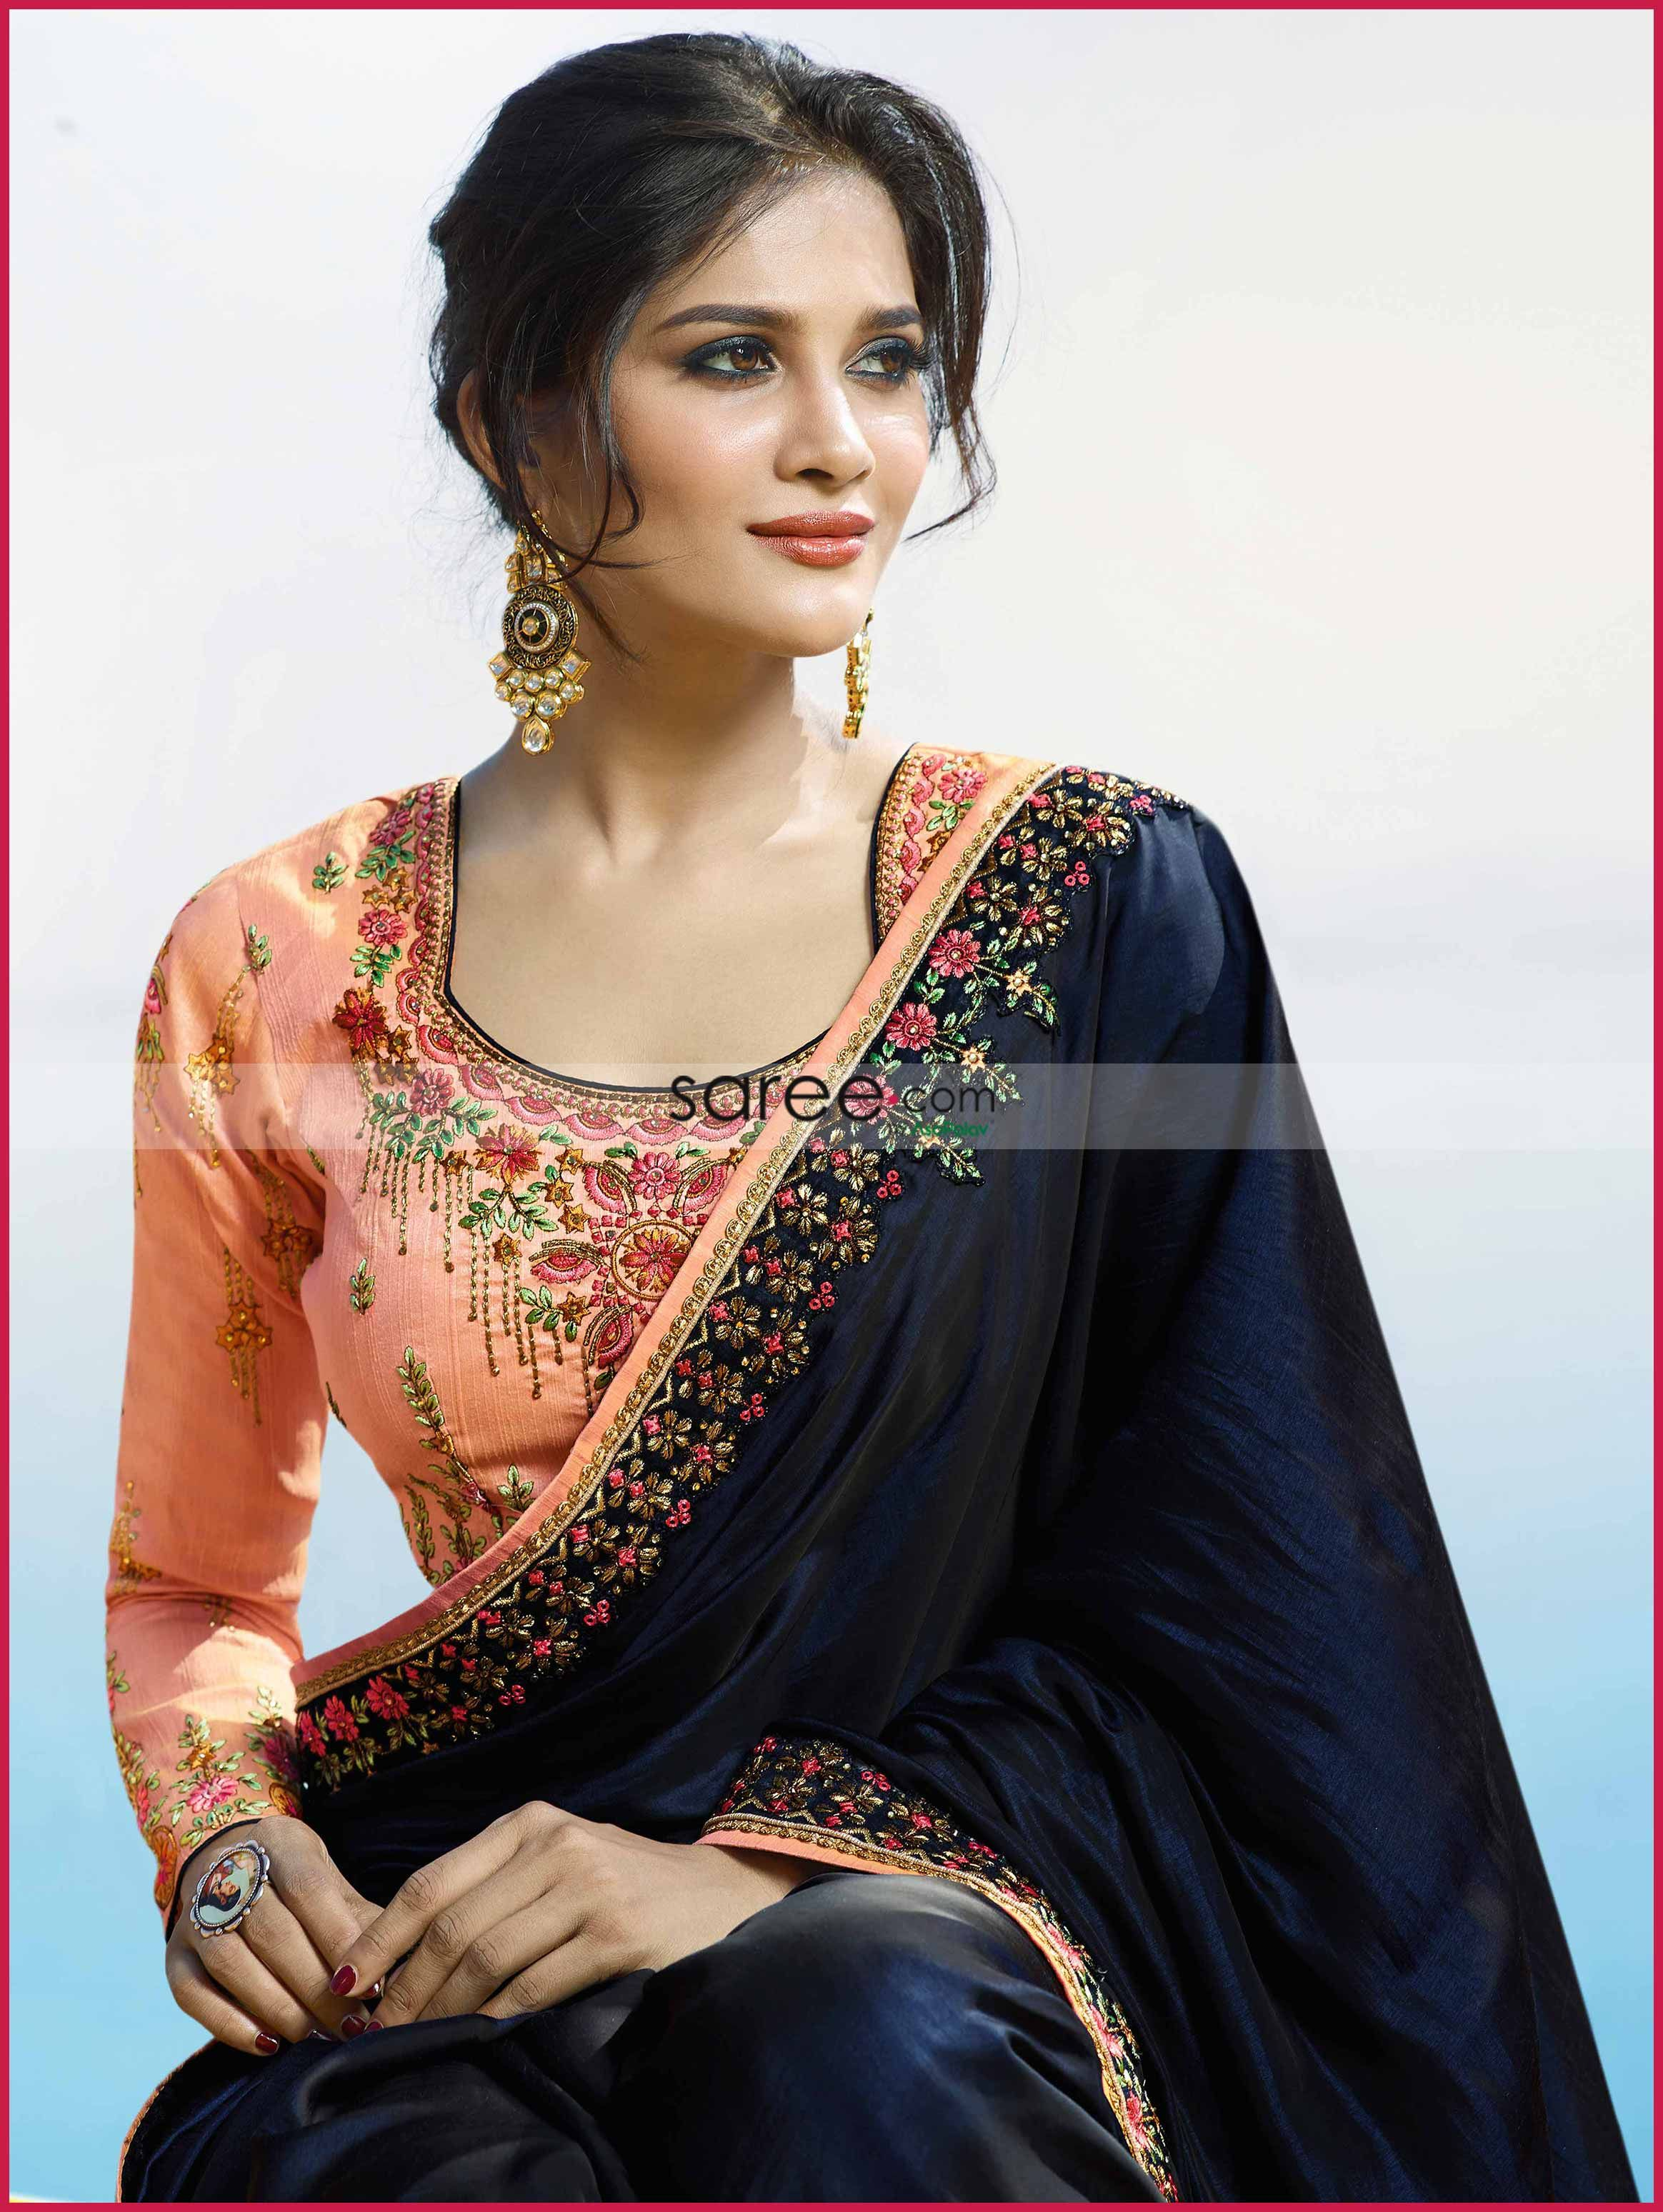 e09bfd8281d5aa Modish Matki Neckline Skim and Contour your pretty collar bones with this  alluring neckline style. Get more Blouse Designs Ideas from Saree.com